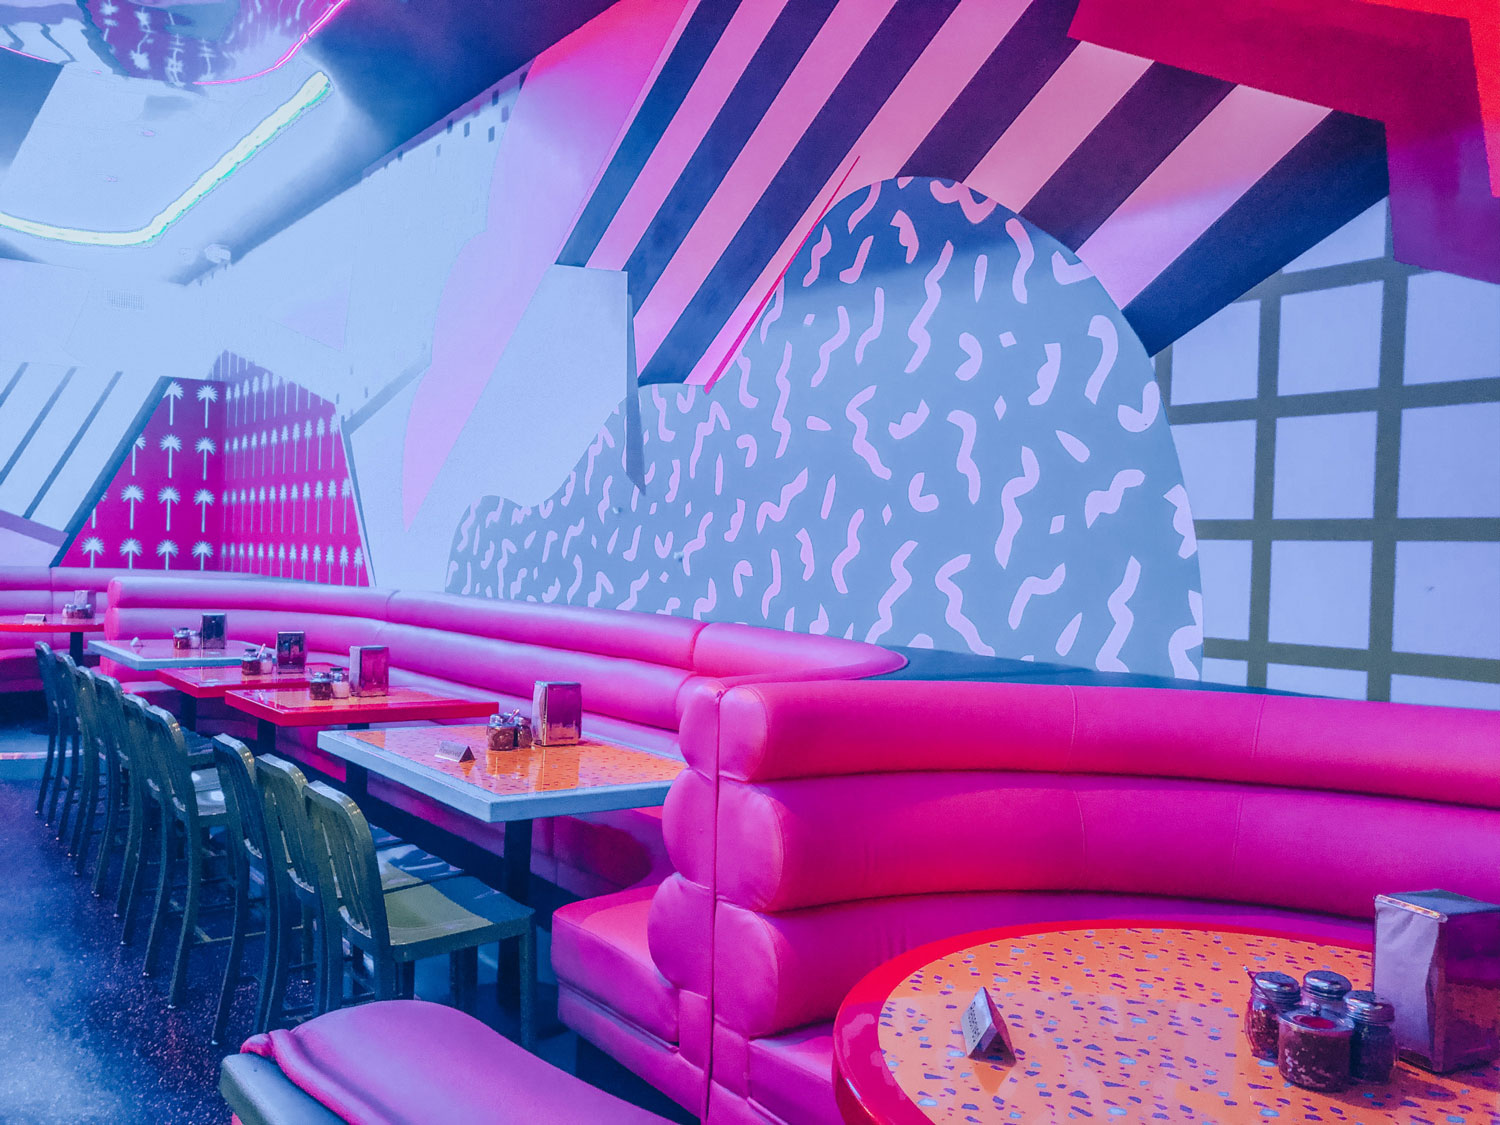 Game Over is an LA pizza joint that's straight out of the 80s